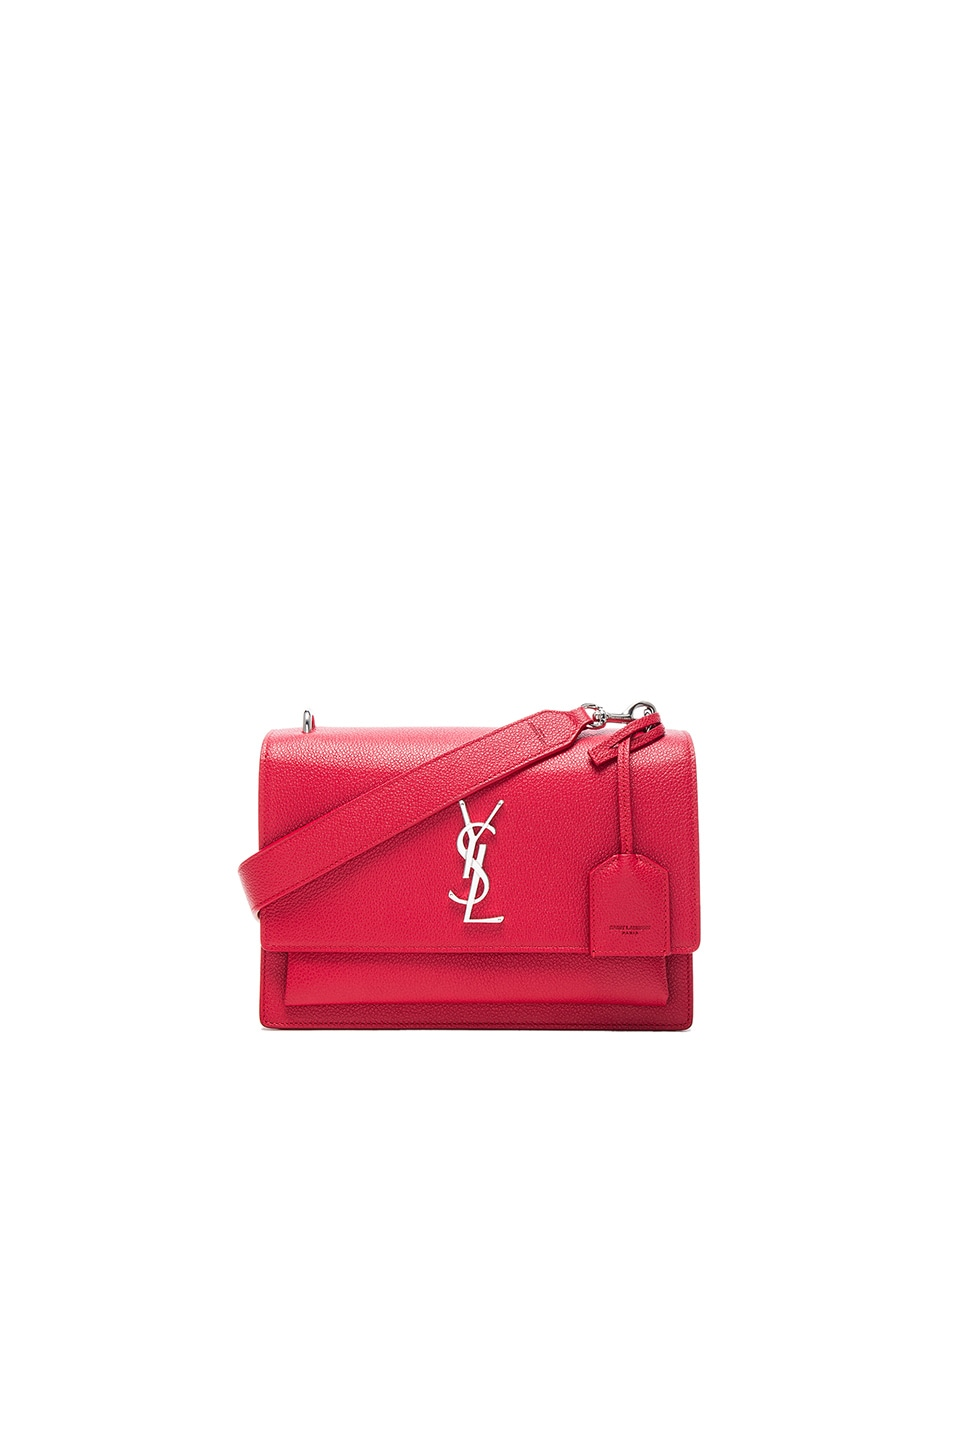 Image 1 of Saint Laurent Medium Monogramme Sunset Satchel in Red